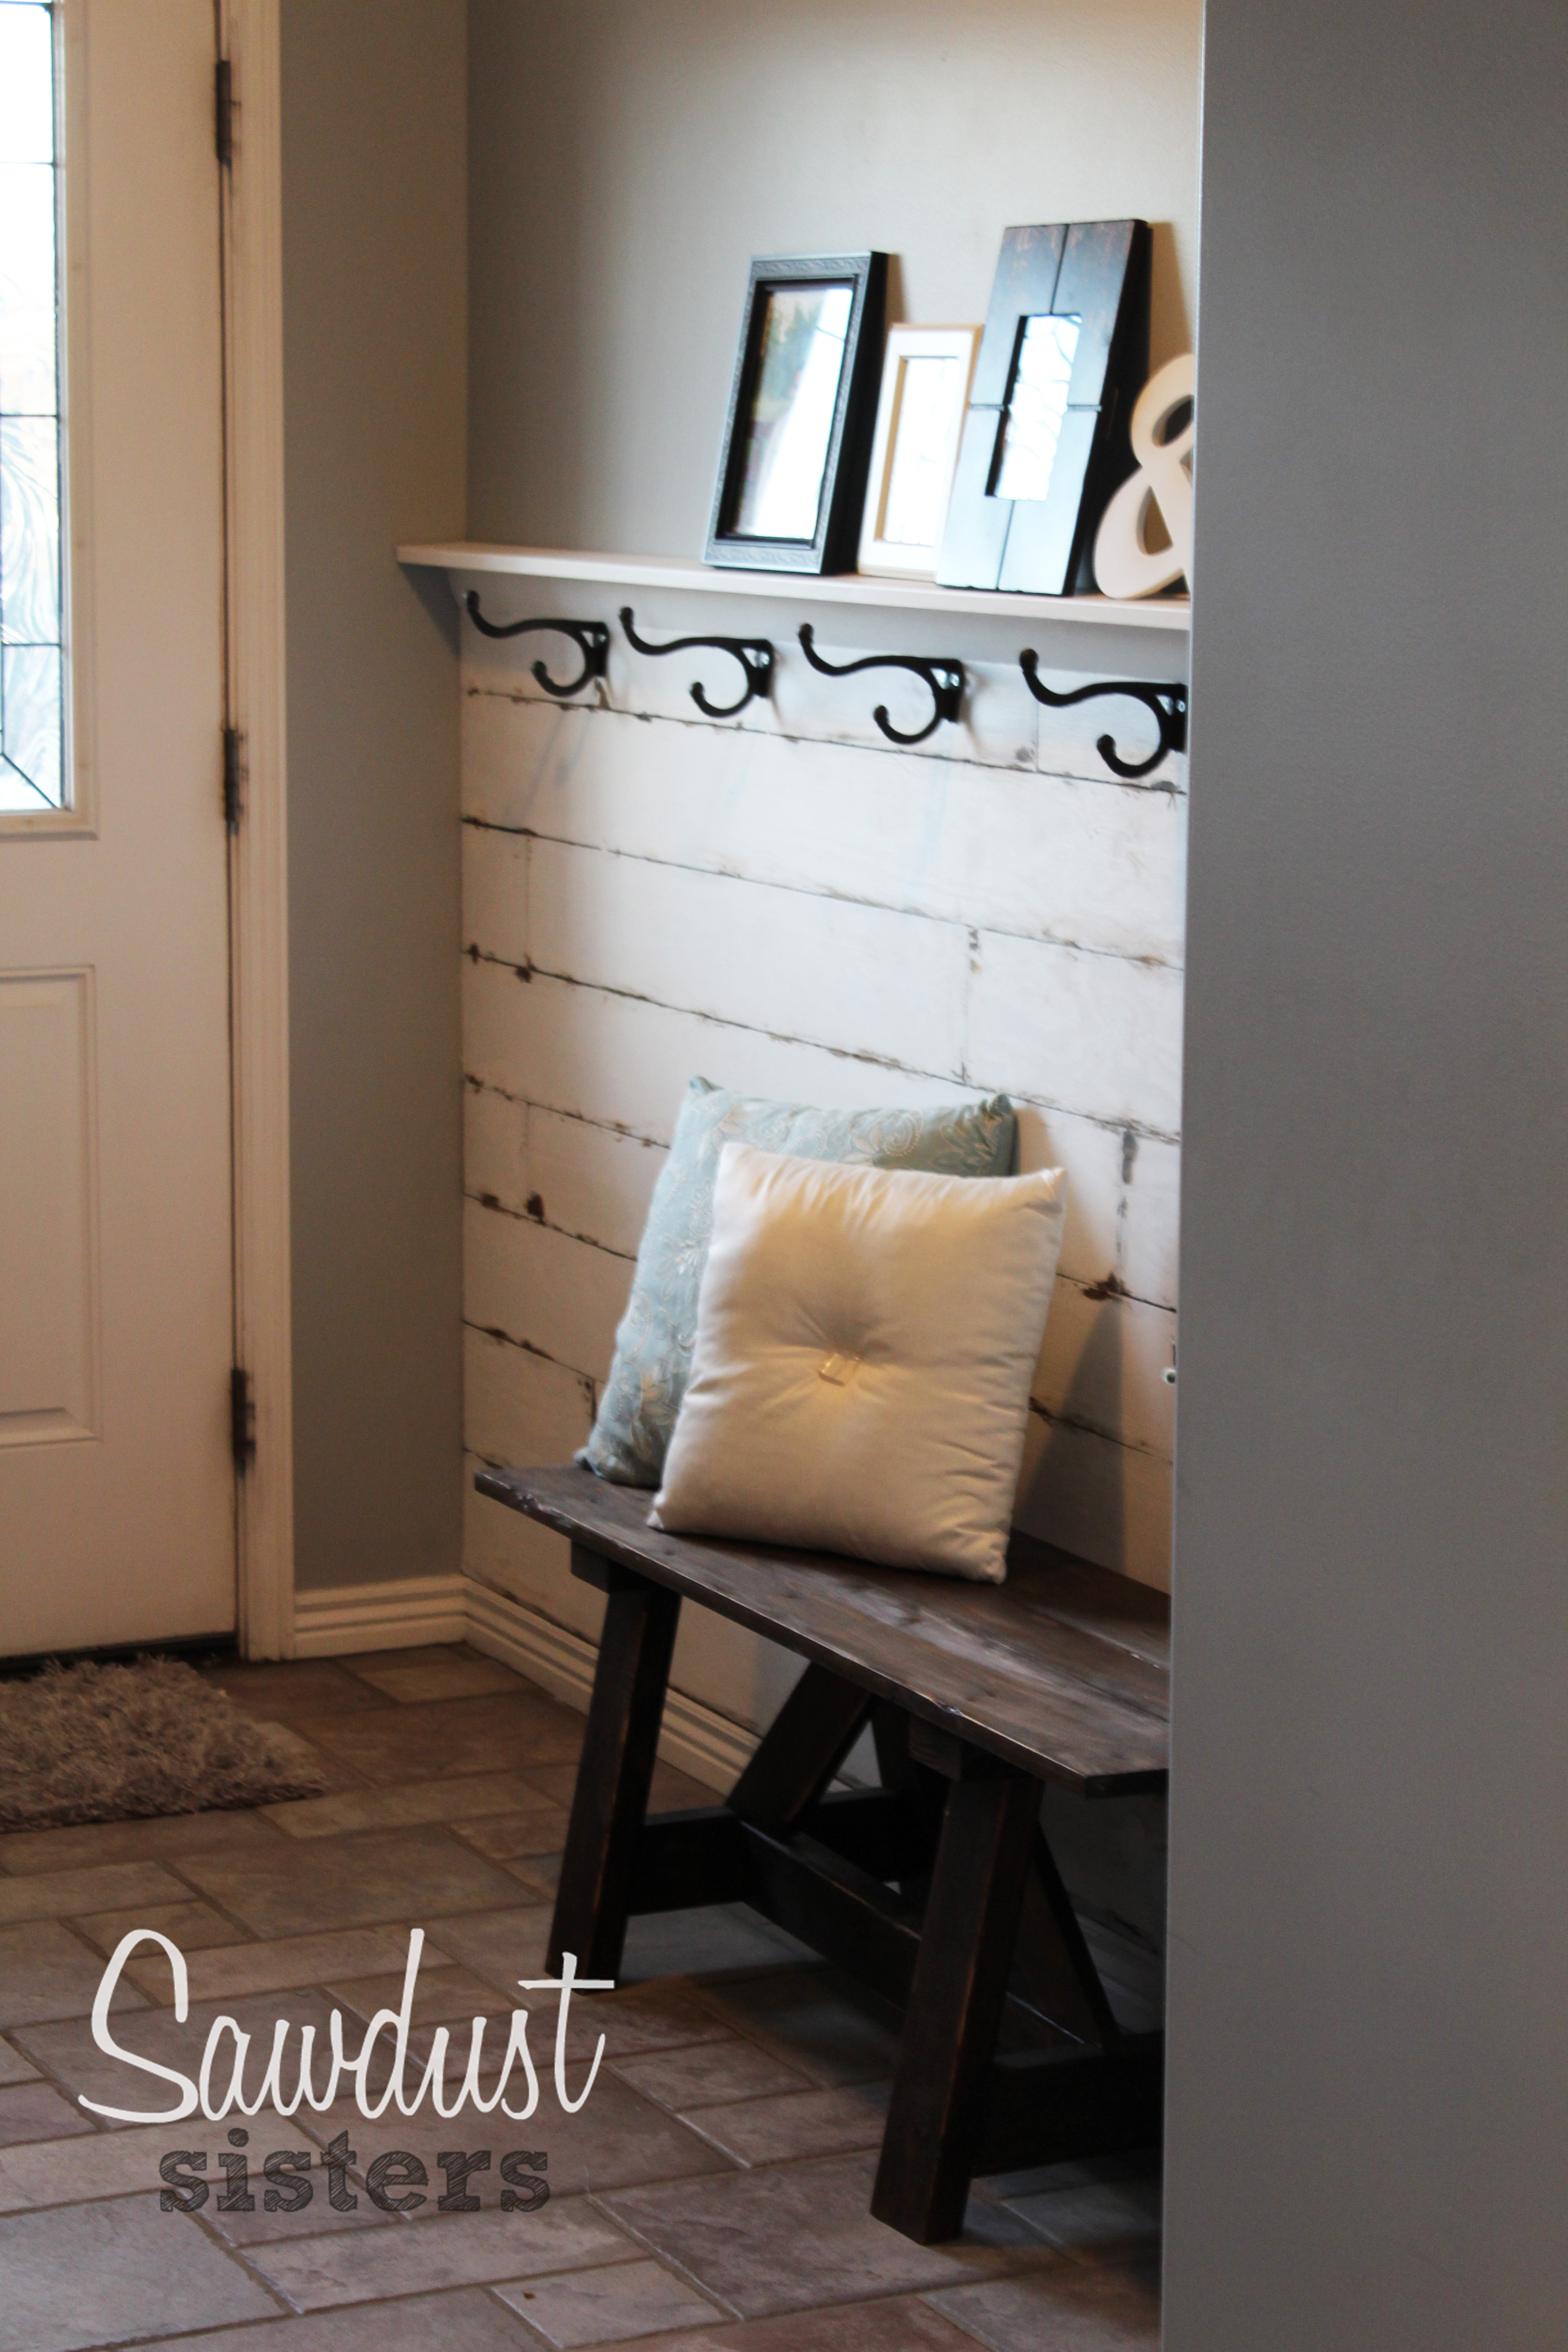 Diy entry way plank wall video tutorial sawdust sisters - Wall art for entrance way ...